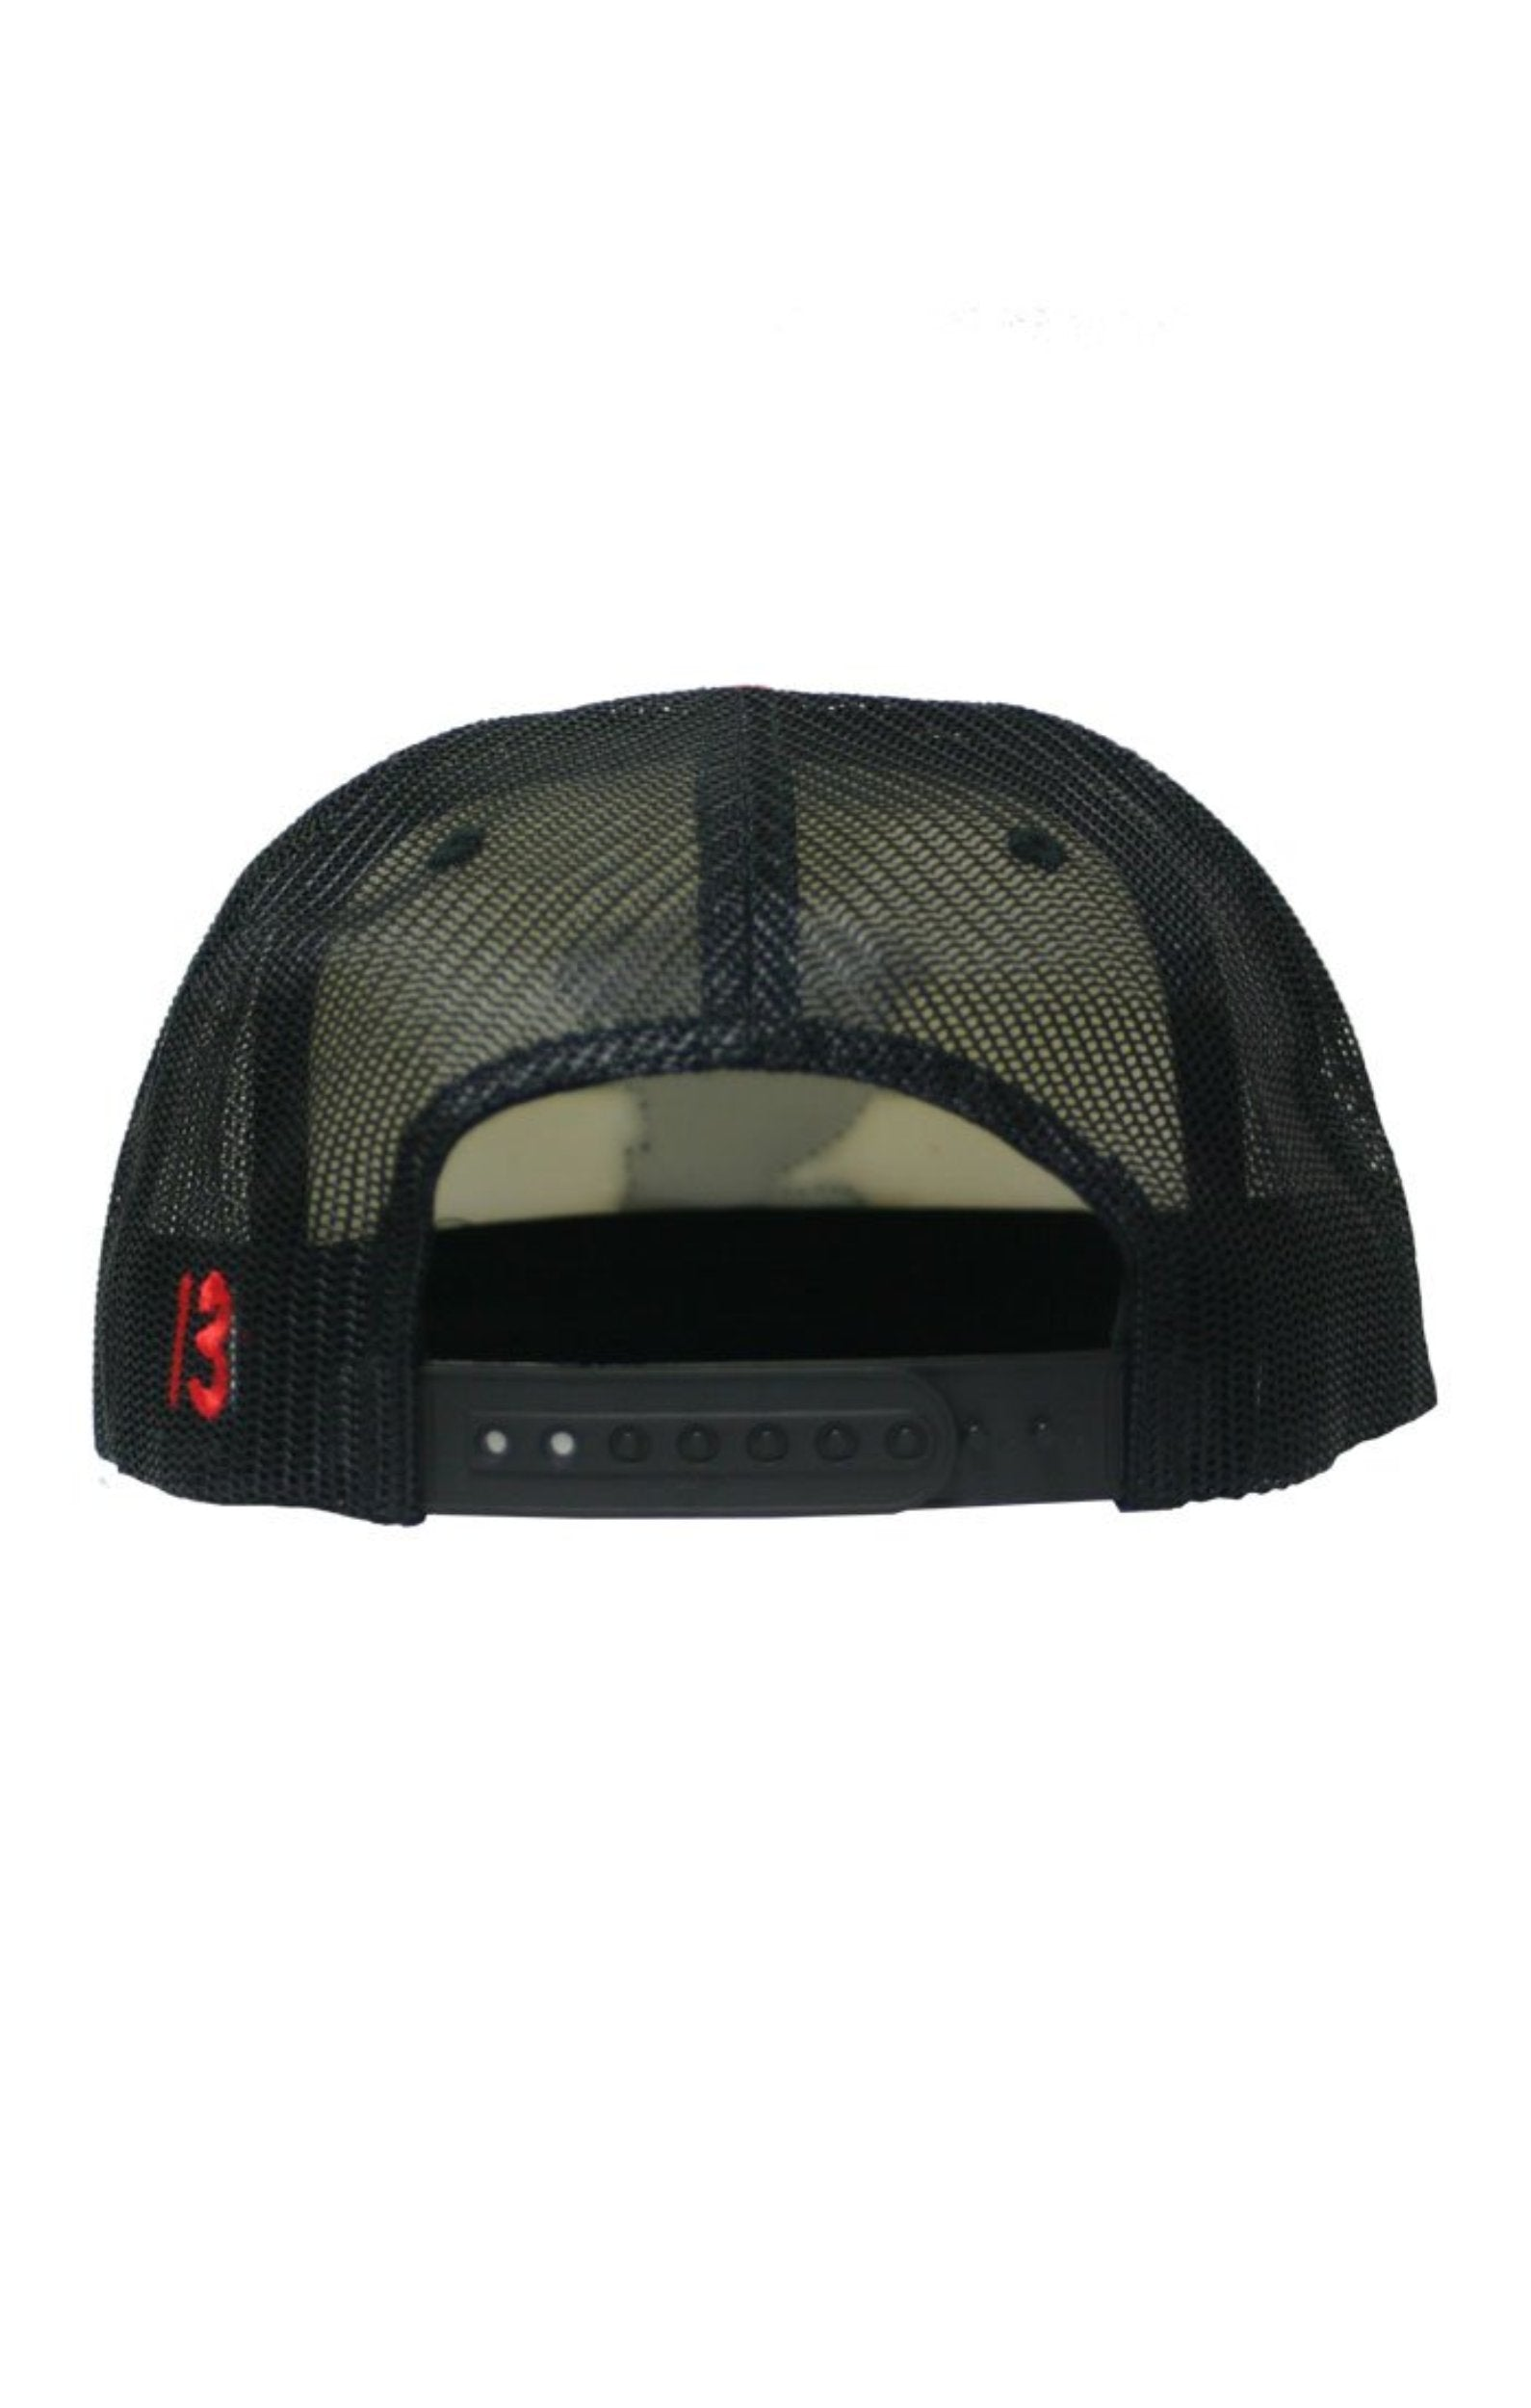 The GREASE GAS & GLORY 3-Tone Trucker Cap